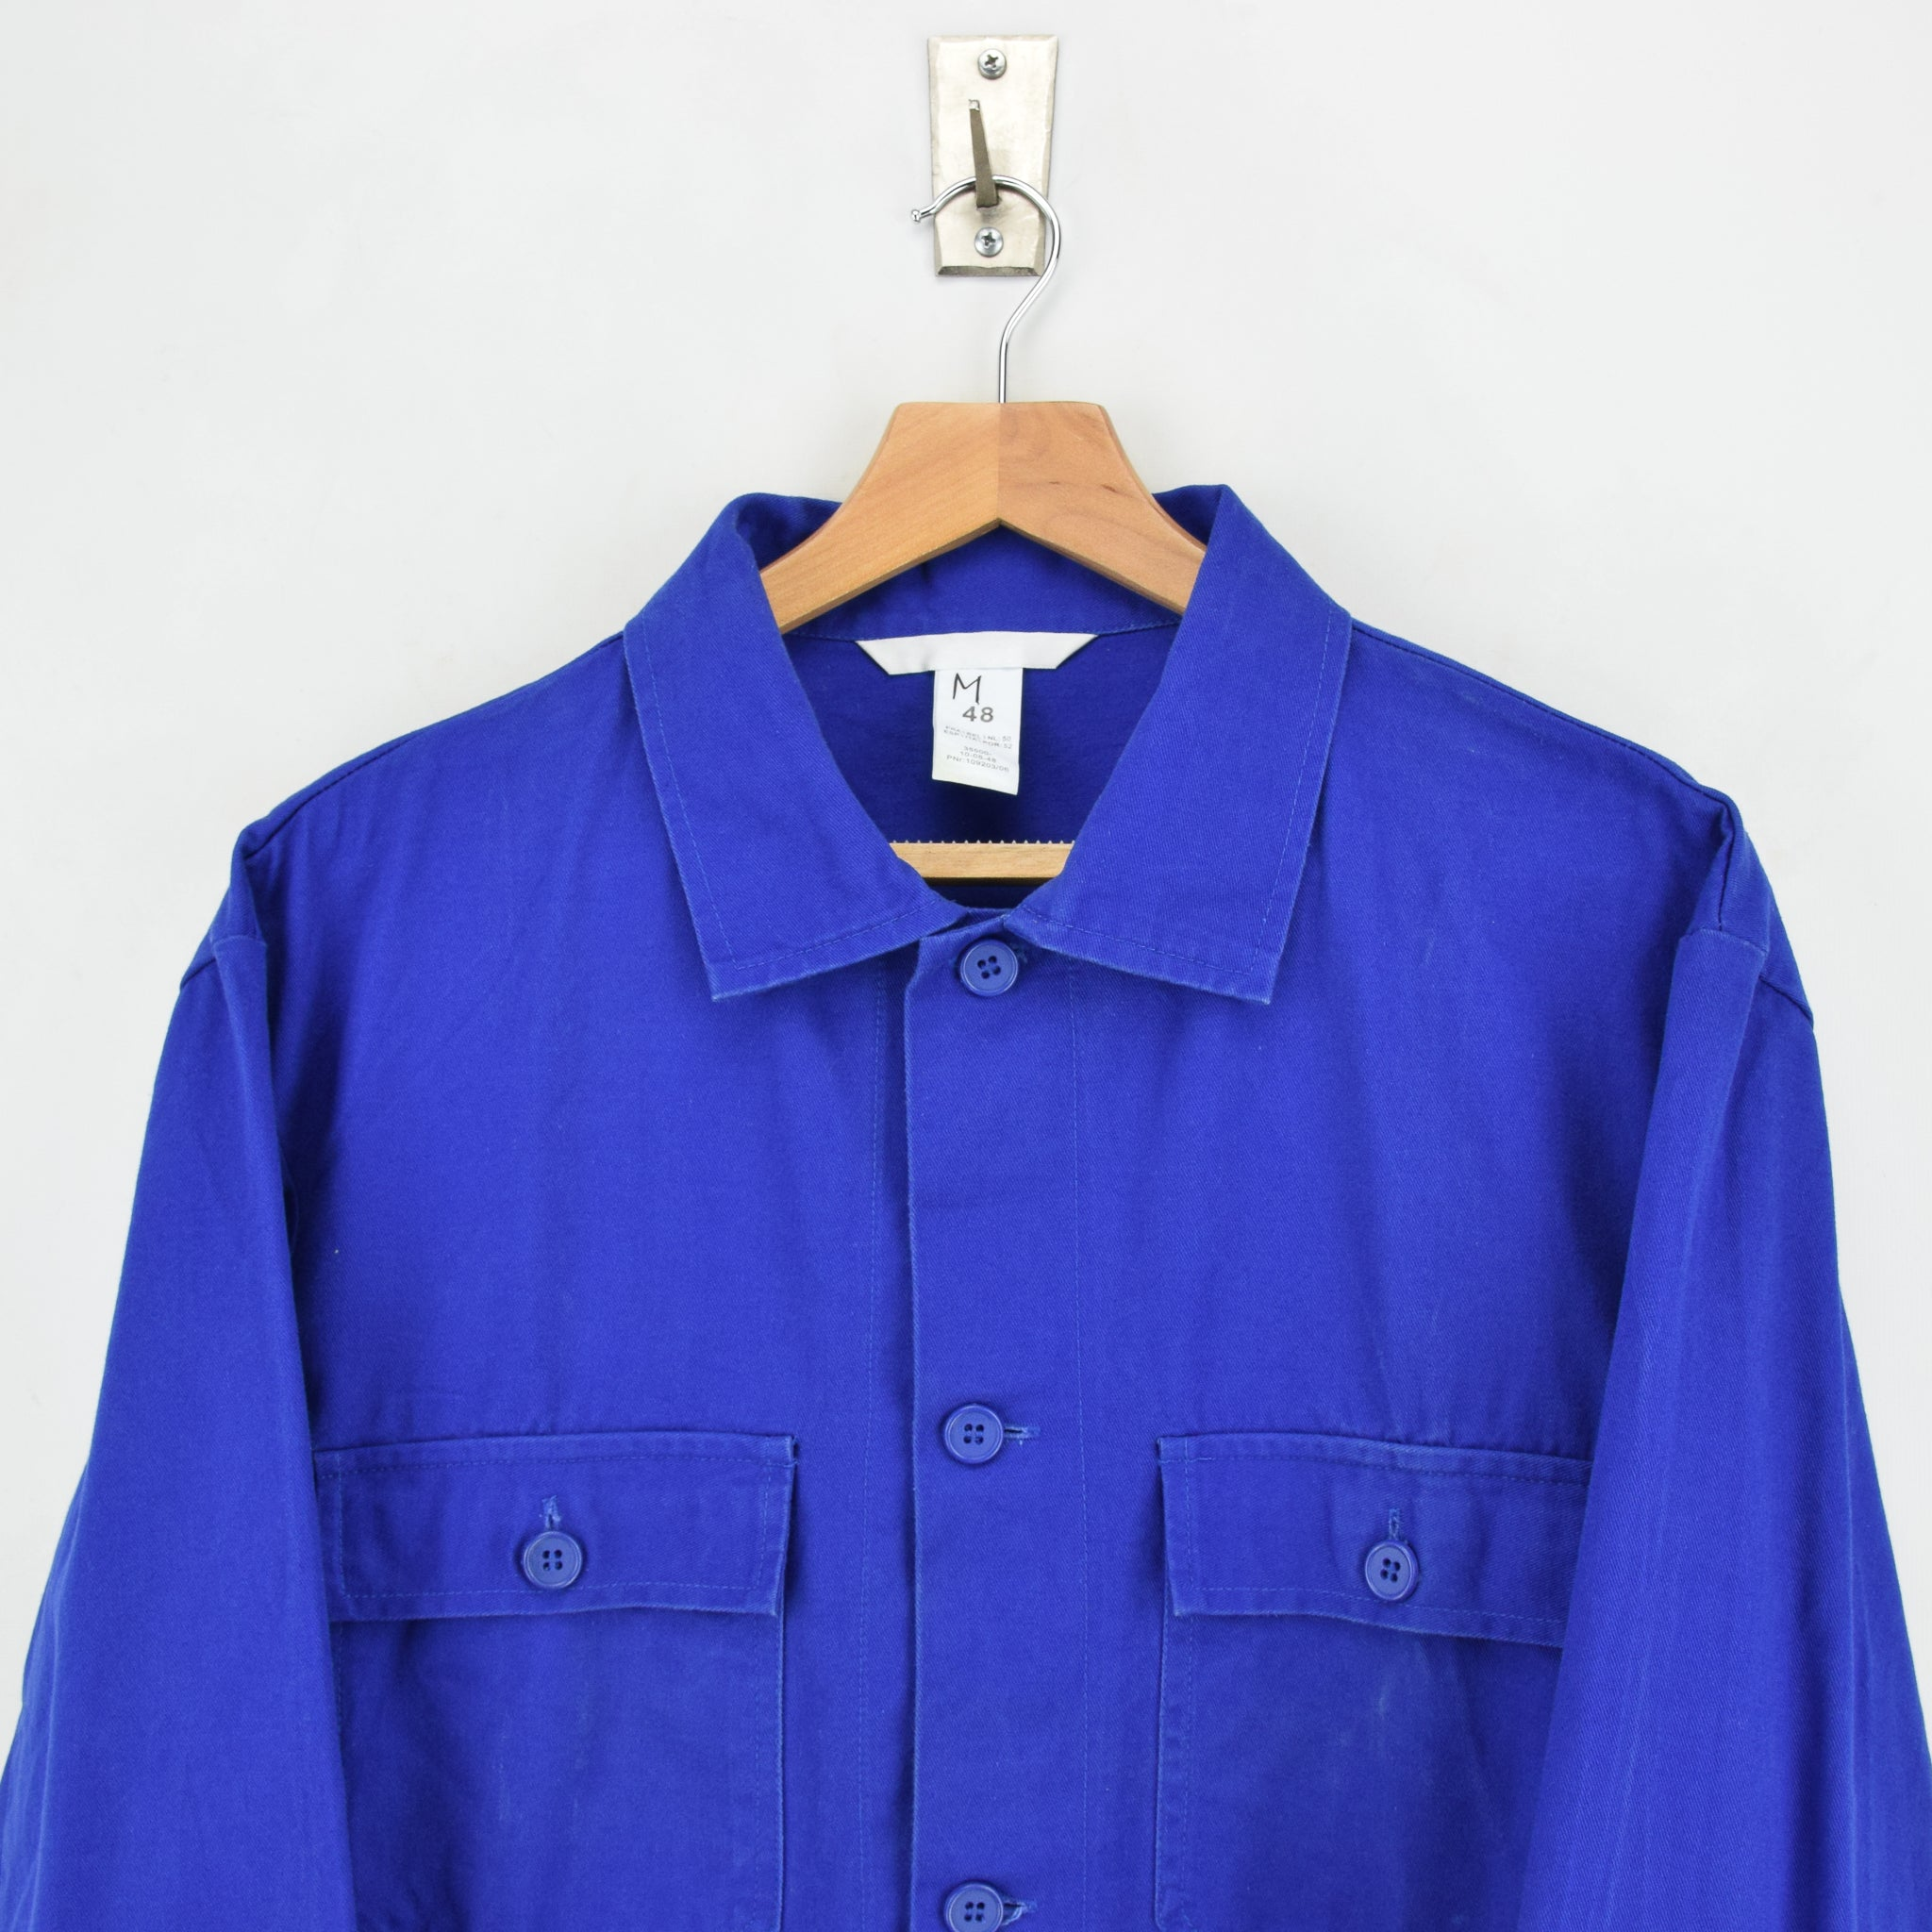 Vintage Bright Blue French Style Worker Sanforized Chore Shirt Jacket M / L chest